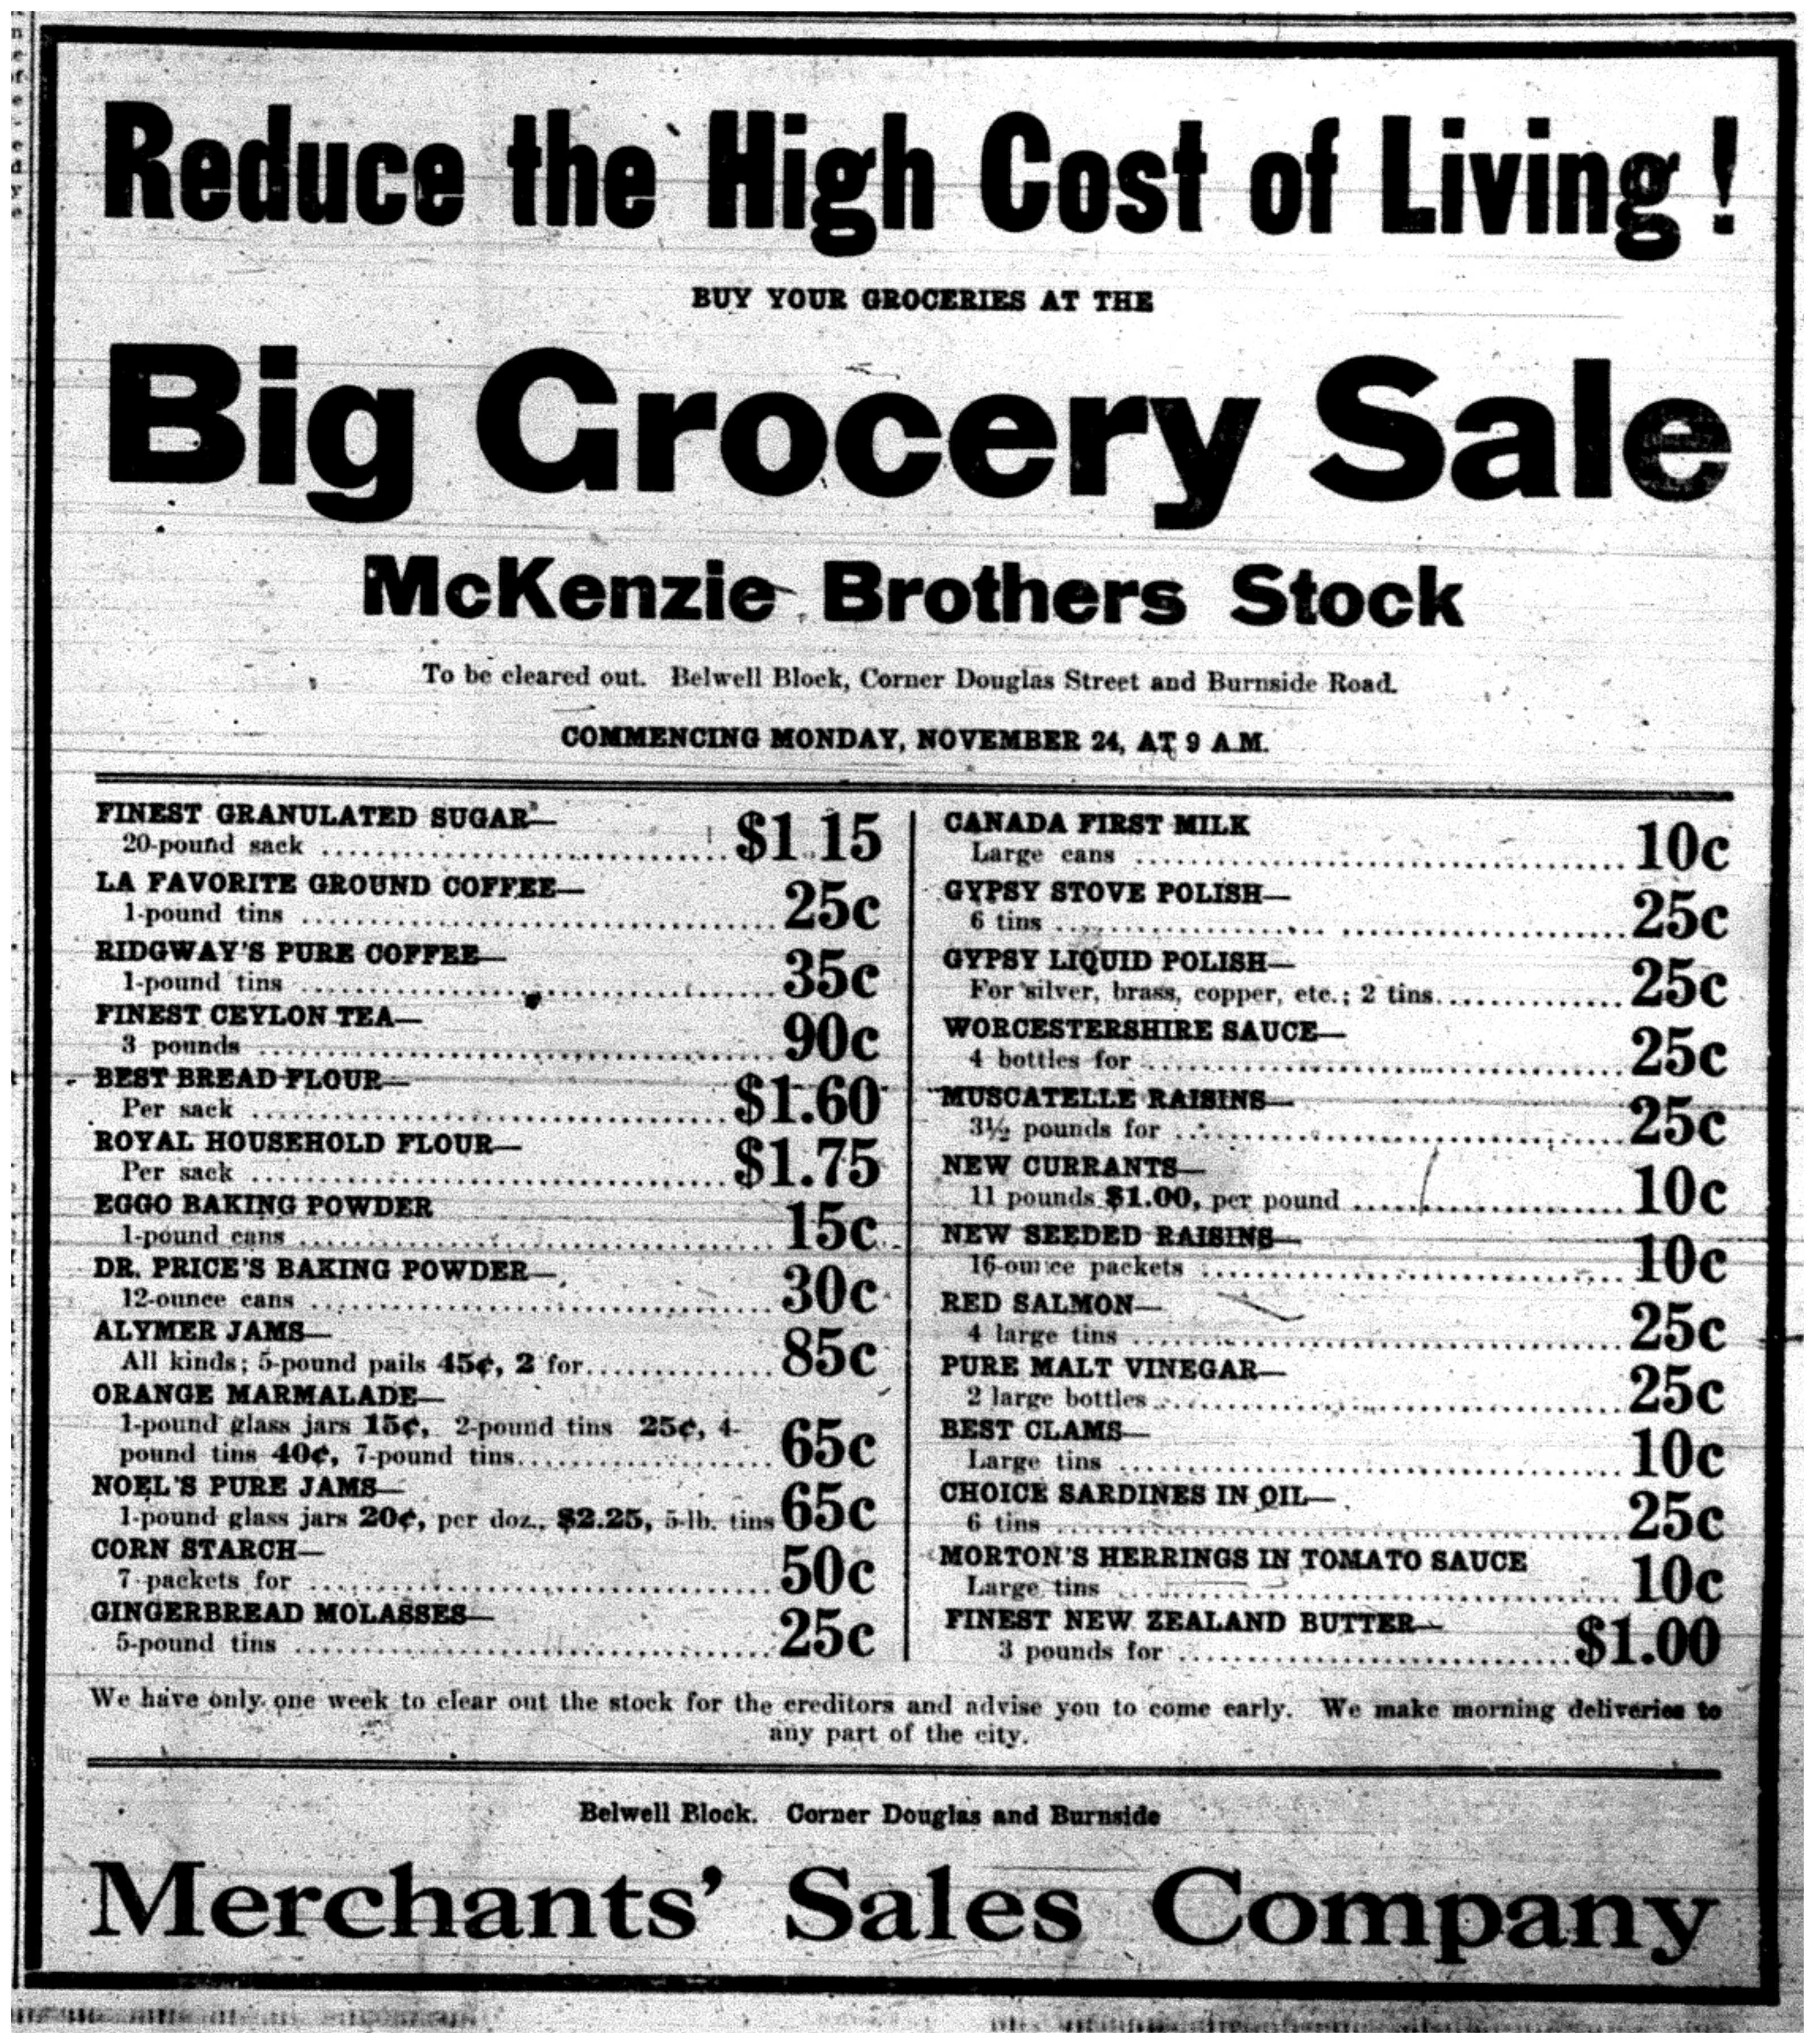 """Reduce the High Cost of Living!"""